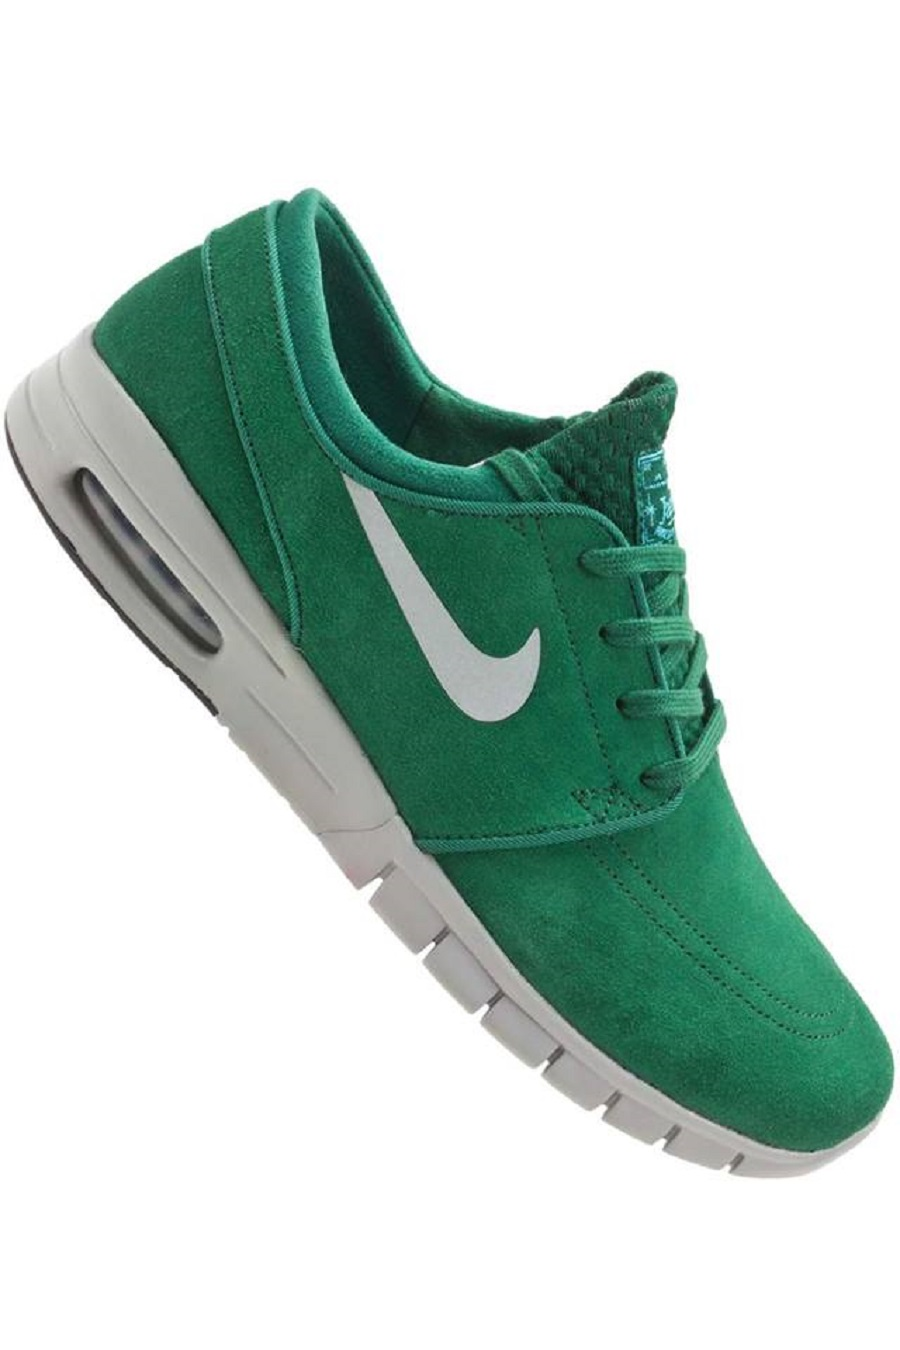 nike sb stefan janoski max l gorge green metallic. Black Bedroom Furniture Sets. Home Design Ideas